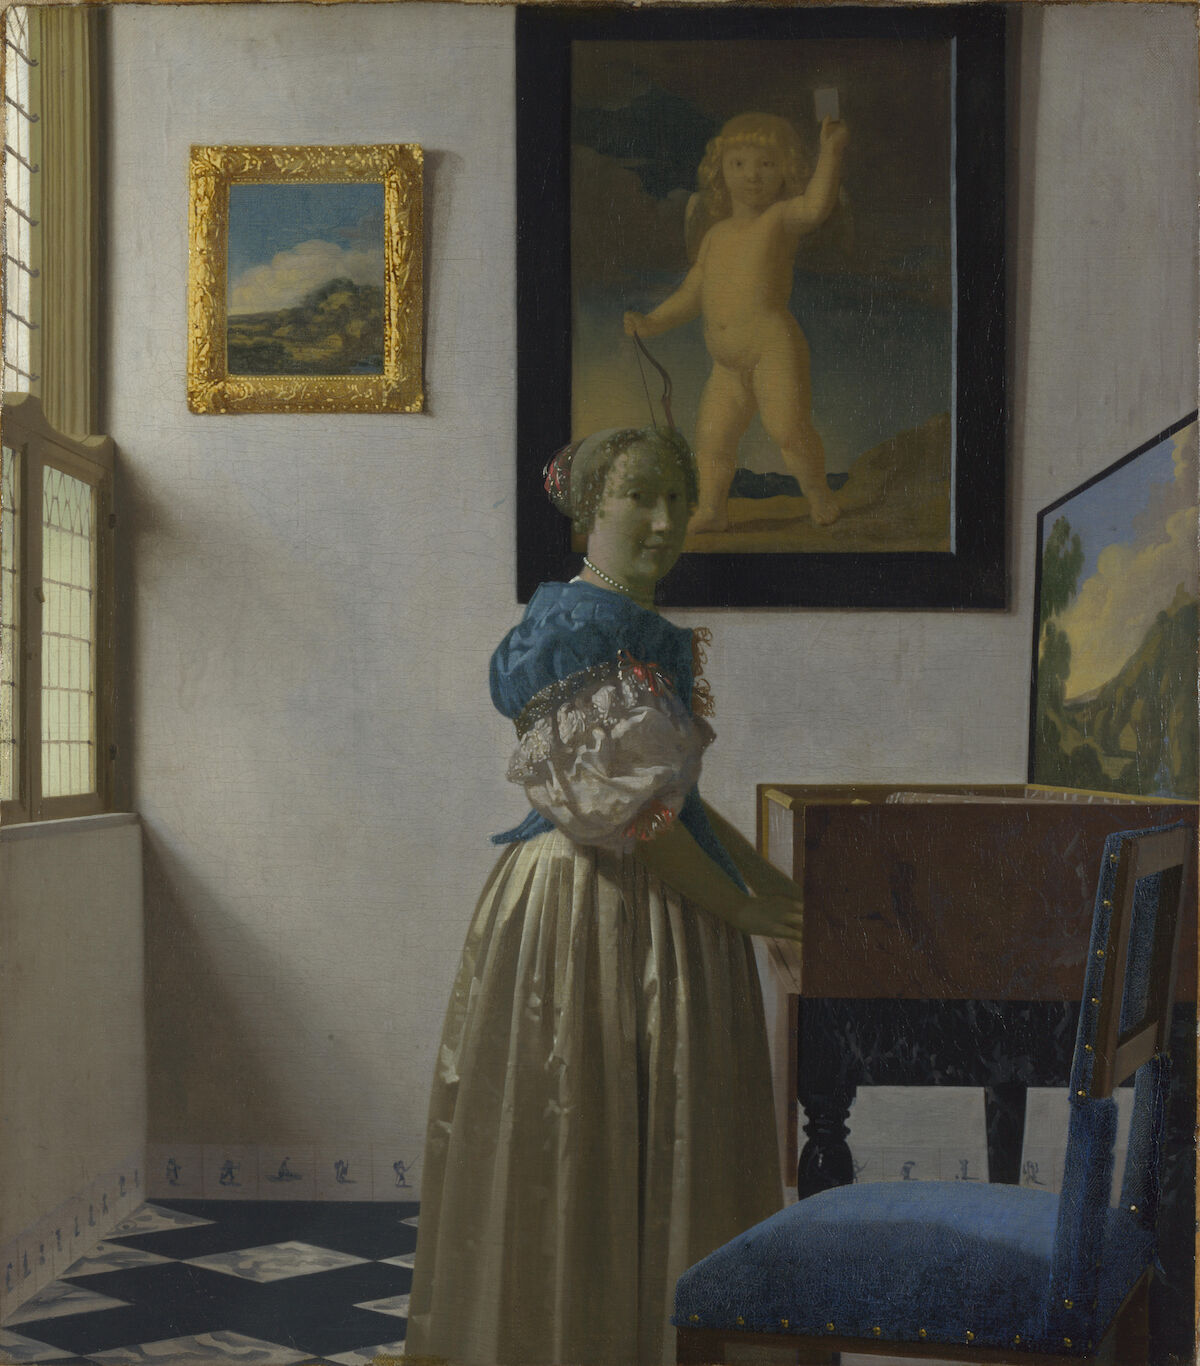 Vermeer, A Lady Standing at a Virginal, 1670–72. National Gallery, London. Via Wikimedia Commons.